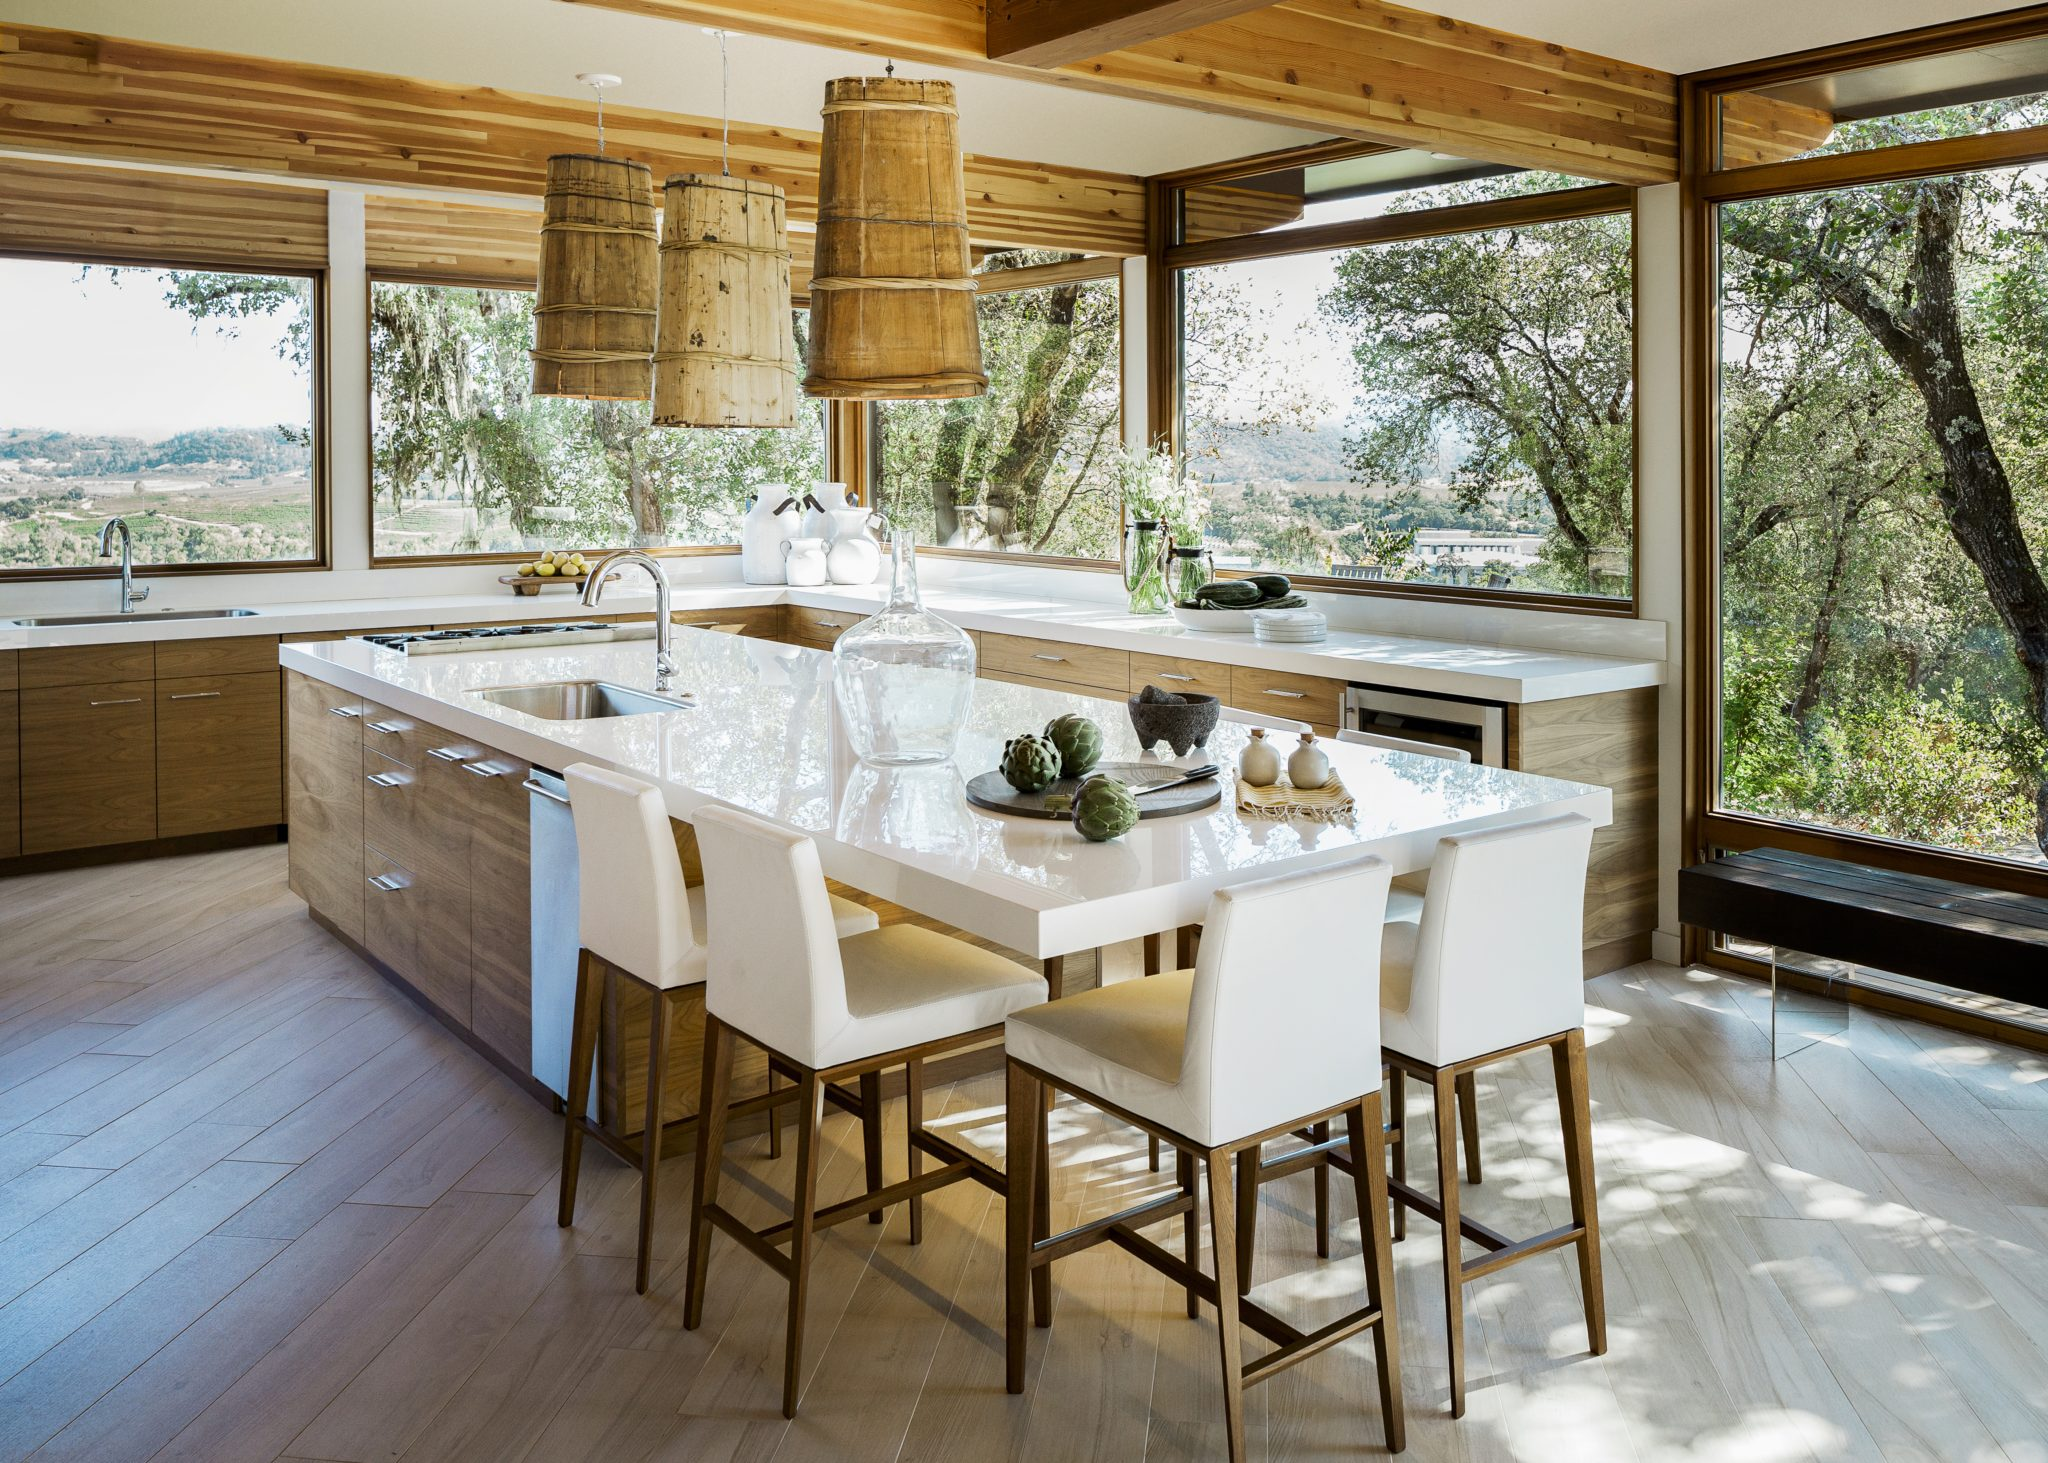 Manyfurnishings in the homepossessa unique history—for example, these one-of-a-kindpendant lights from Wildflower Organicswere crafted from Tibetan carryalls originally used to transport water. Karma Dog Construction built both the cantileveredporcelain countertops andbookmatched black walnut cabinetry, while the chic stools set around the kitchen island are from Calligaris.